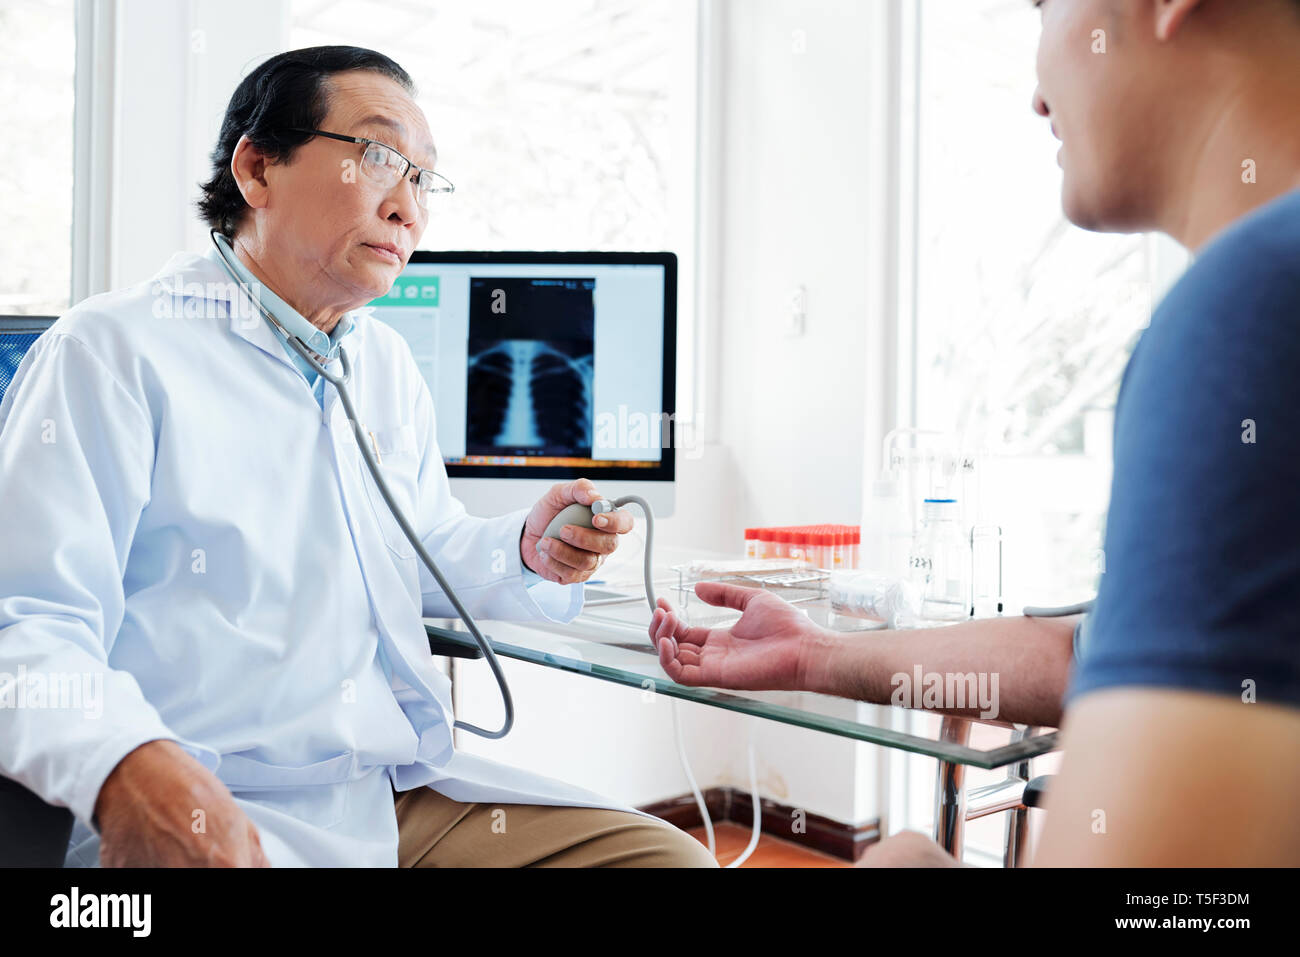 Doctor measuring blood pressure of patient - Stock Image